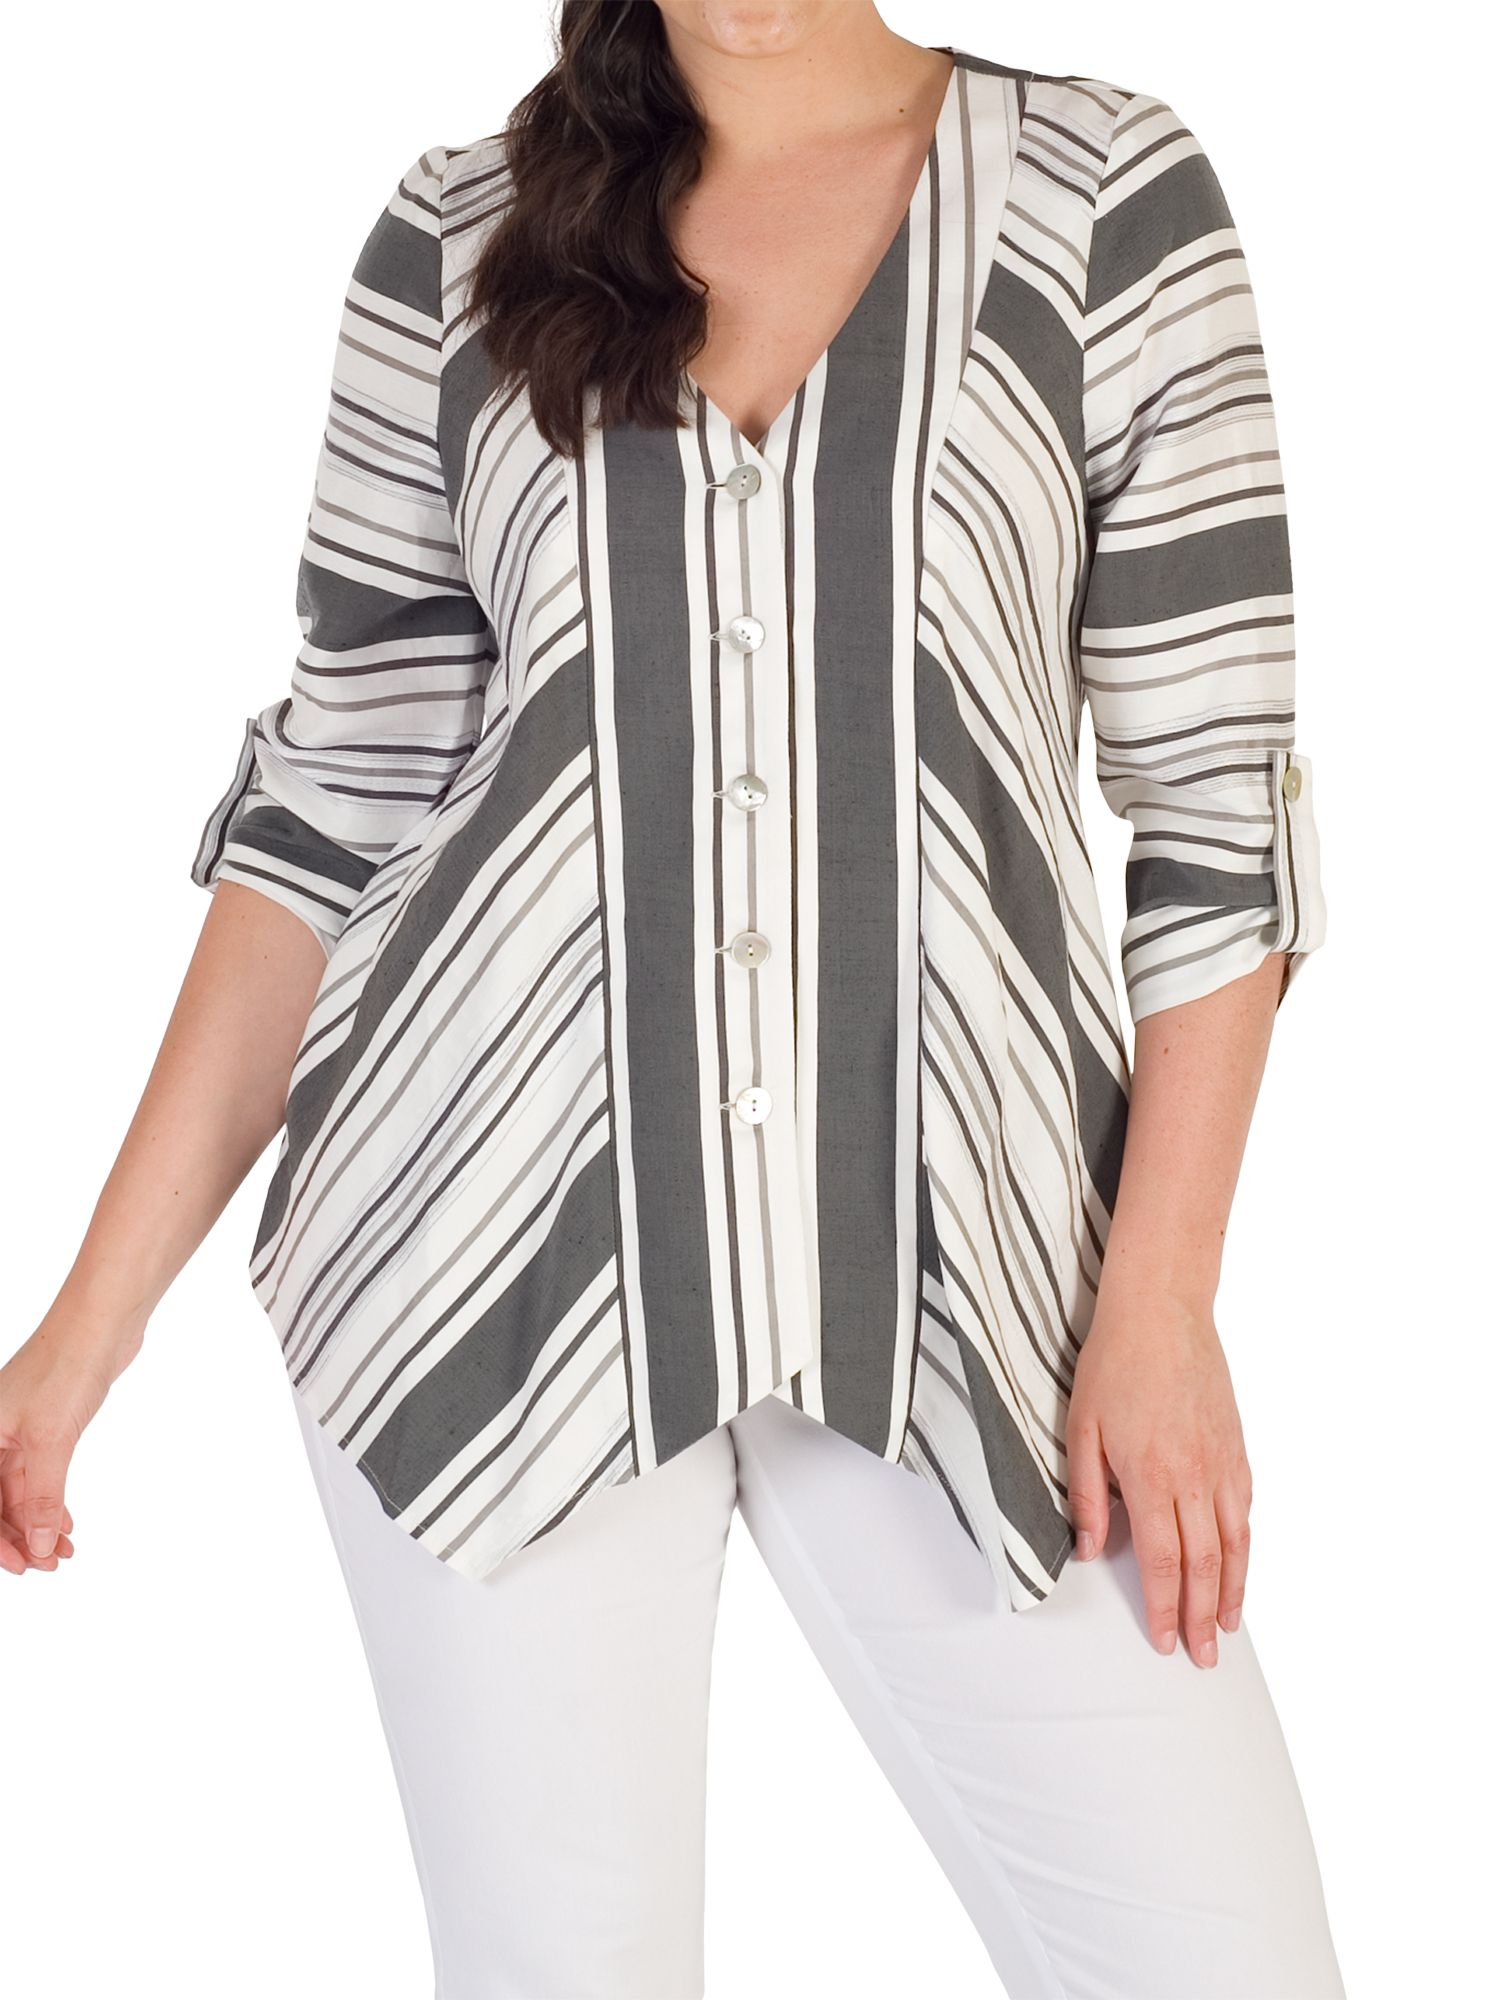 Chesca Chesca Diagonal Striped Jacket, White/Black